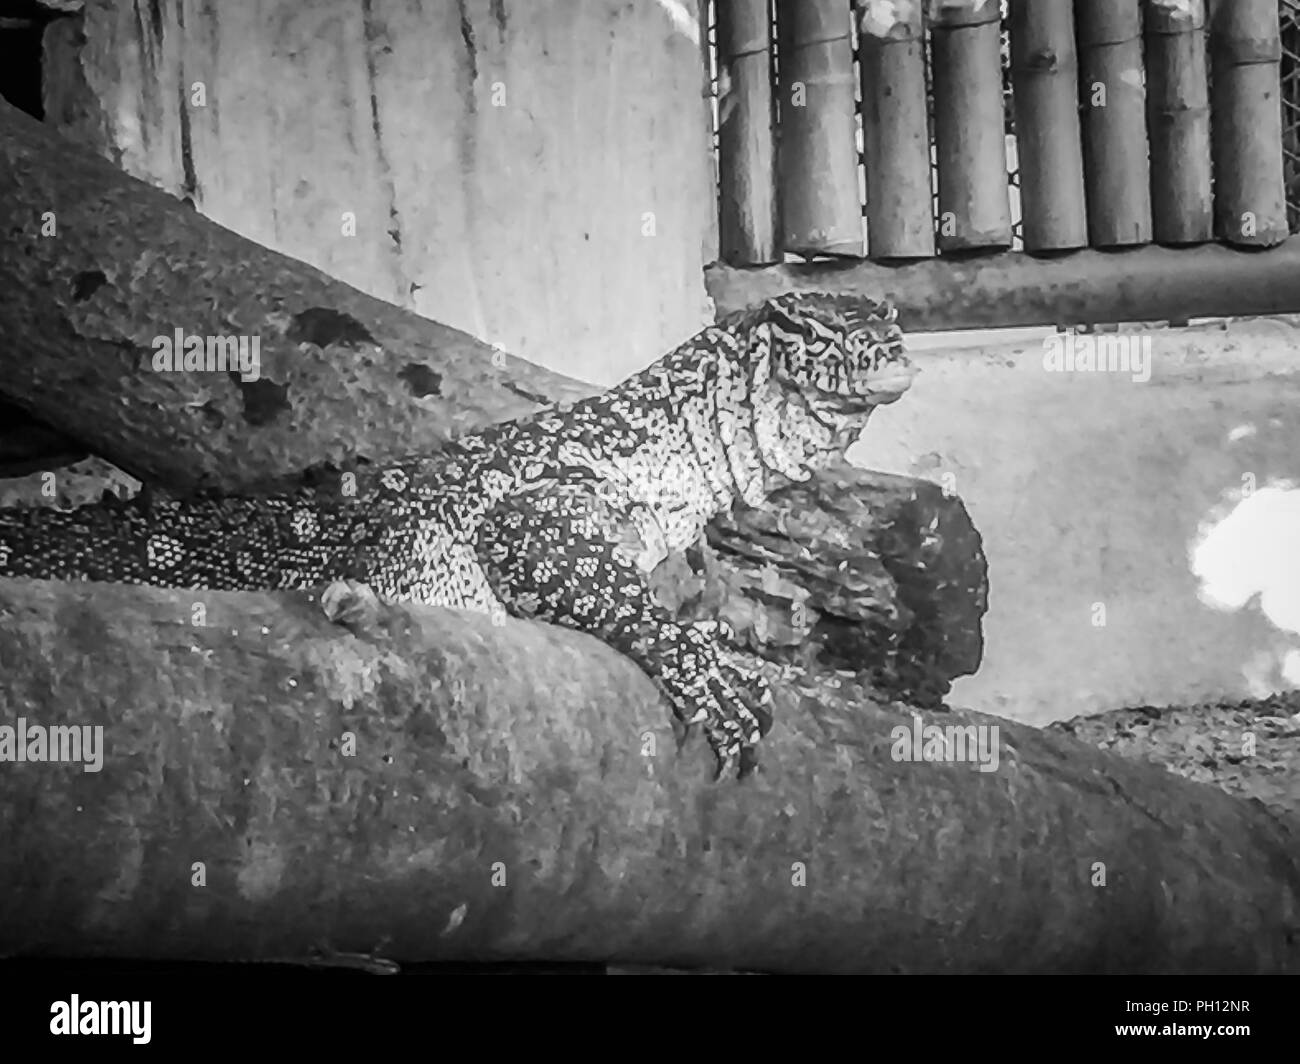 The Nile monitor (Varanus niloticus) , also called the African small-grain lizard at the public zoo. - Stock Image